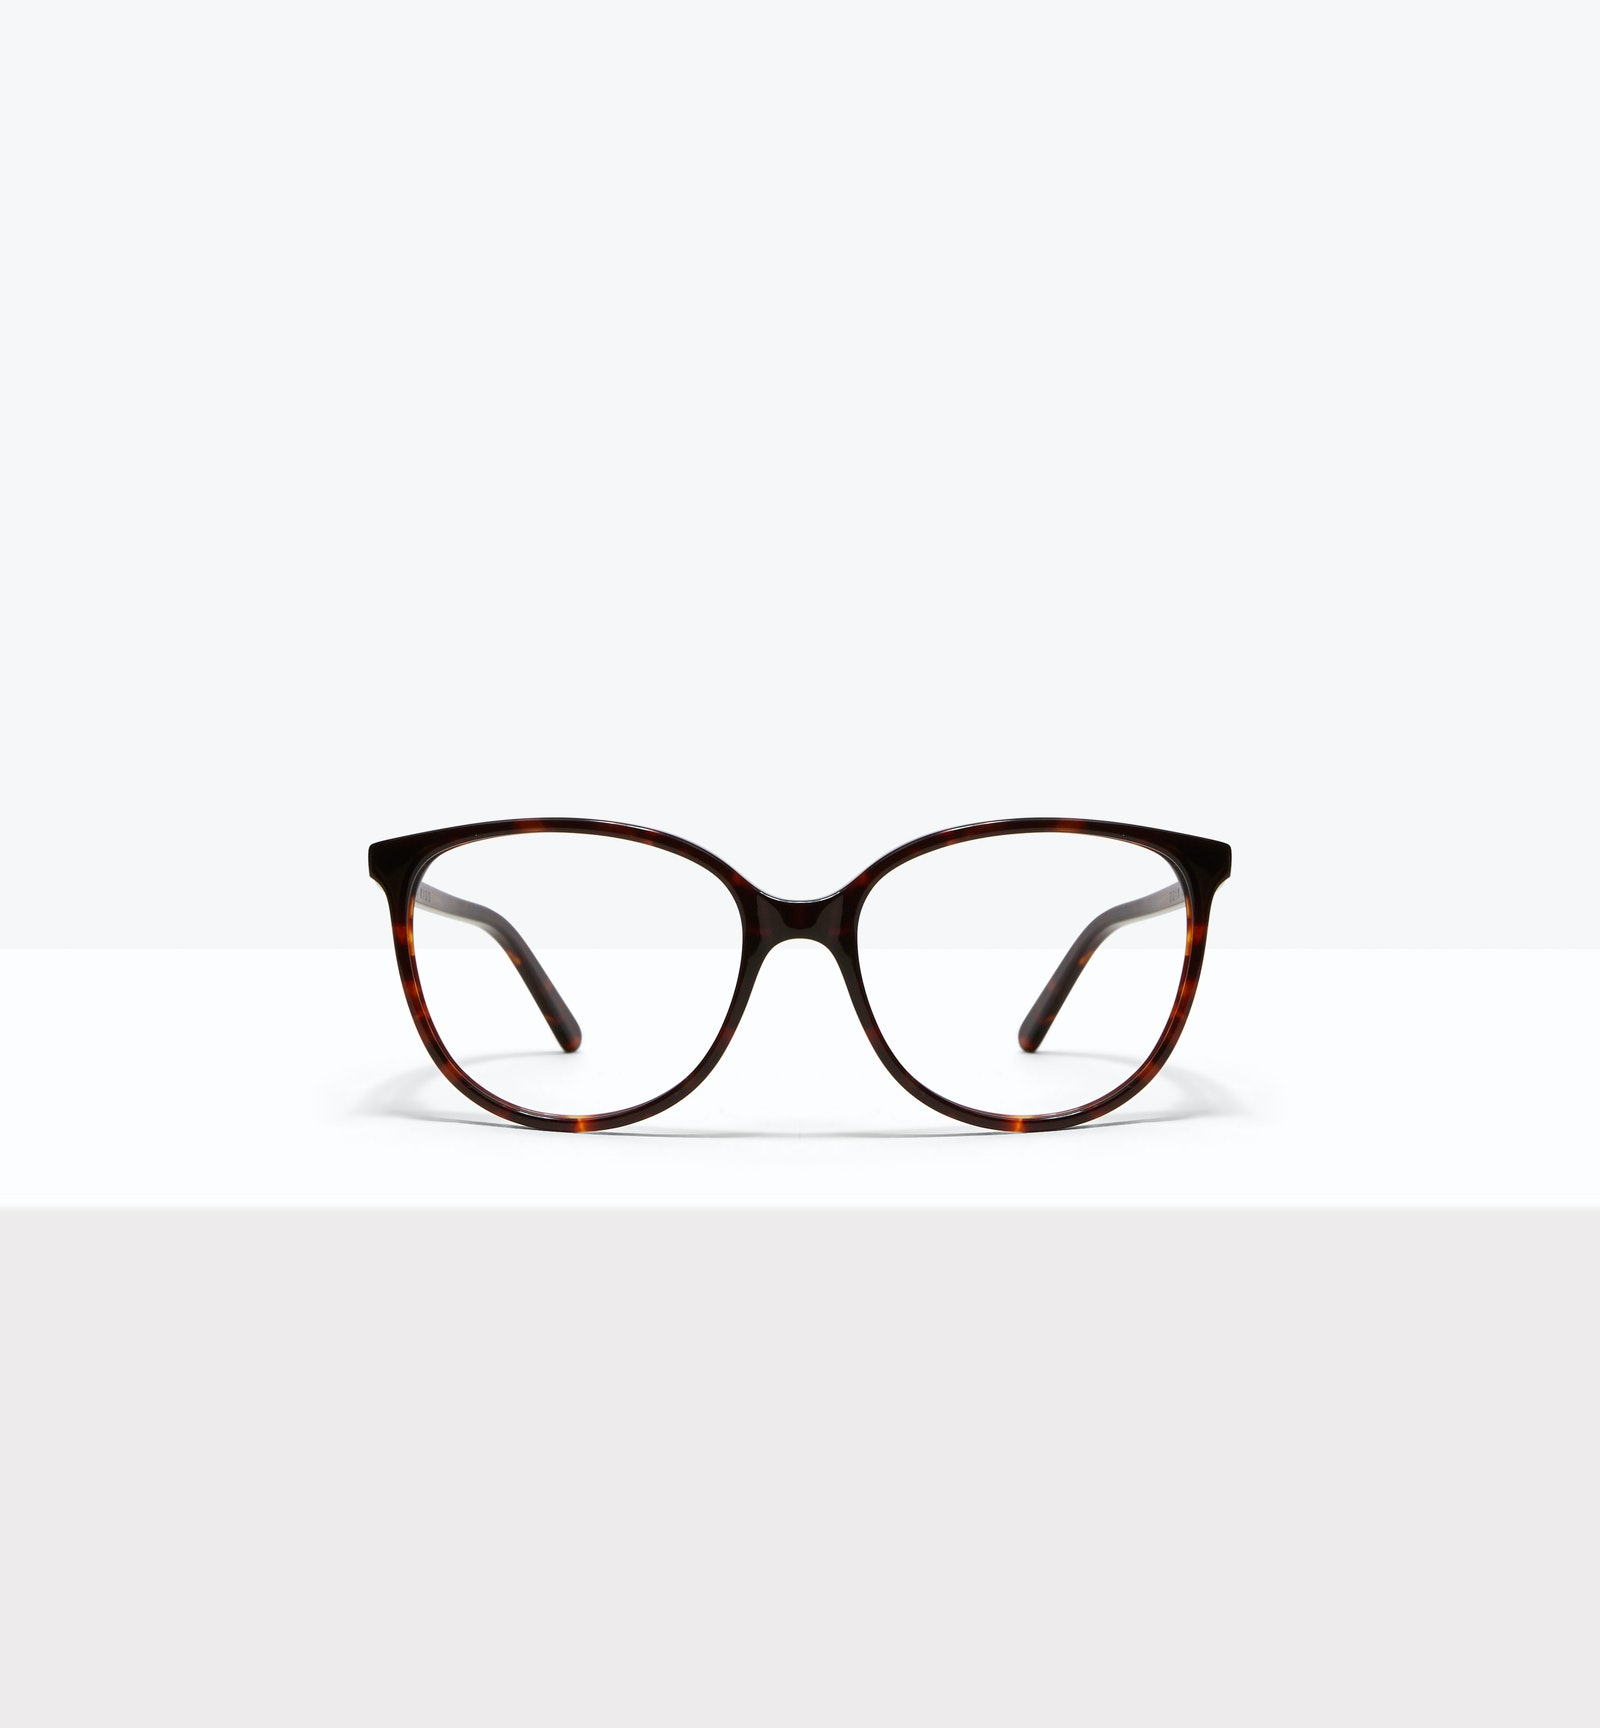 Affordable Fashion Glasses Cat Eye Eyeglasses Women Imagine Sepia Kiss